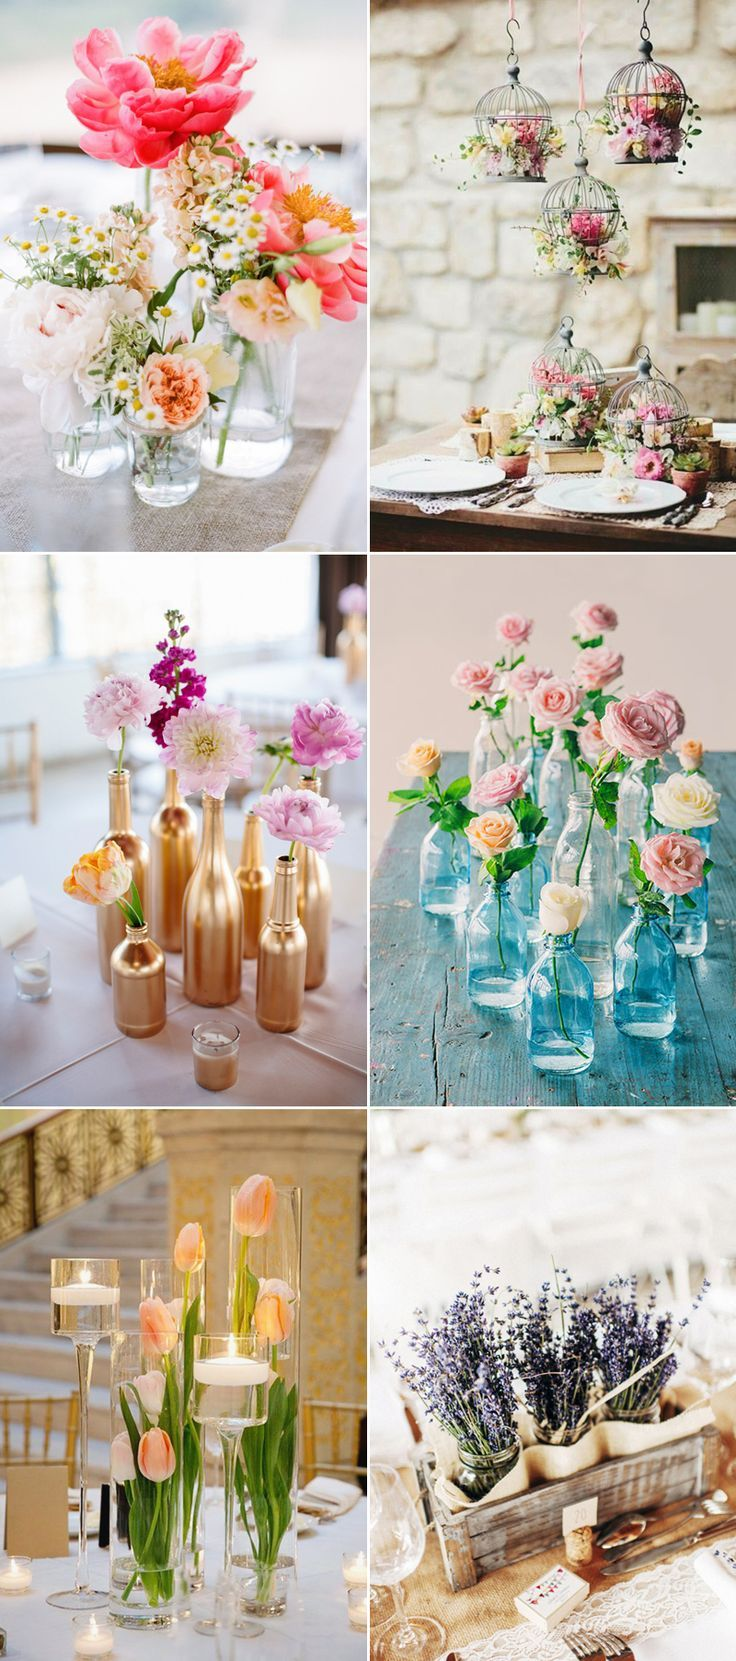 Budgetfriendly Creative Centerpiece Ideas to Impress Your Guests